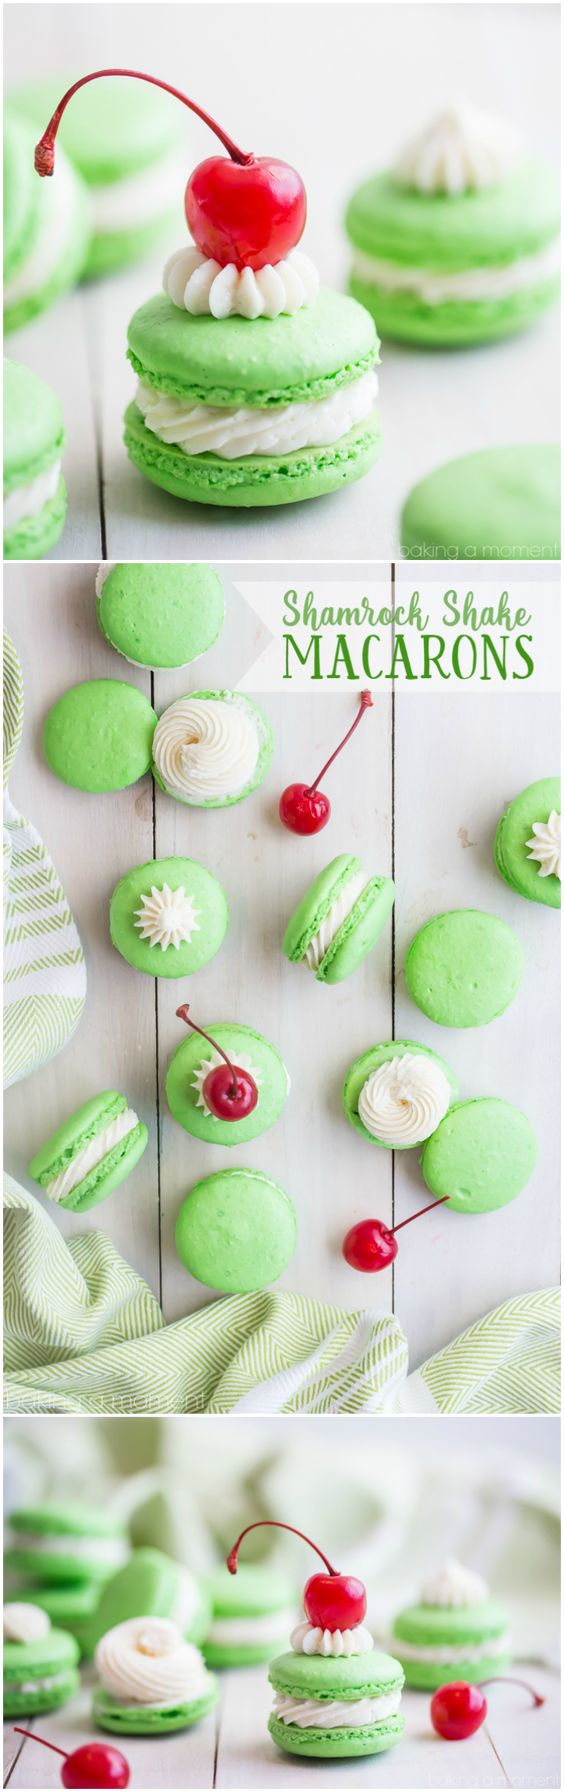 Shamrock Shake Macarons Recipe via Baking a Moment - So much fun for St. Patrick's Day! #easystpatricksdaydesserts #stpatricksday #stpatricksdayparty #stpatricksdaypartyfood #lucky #luckygreen #luckytreats #shamrocks #clovers #rainbowtreats #leprechantreats